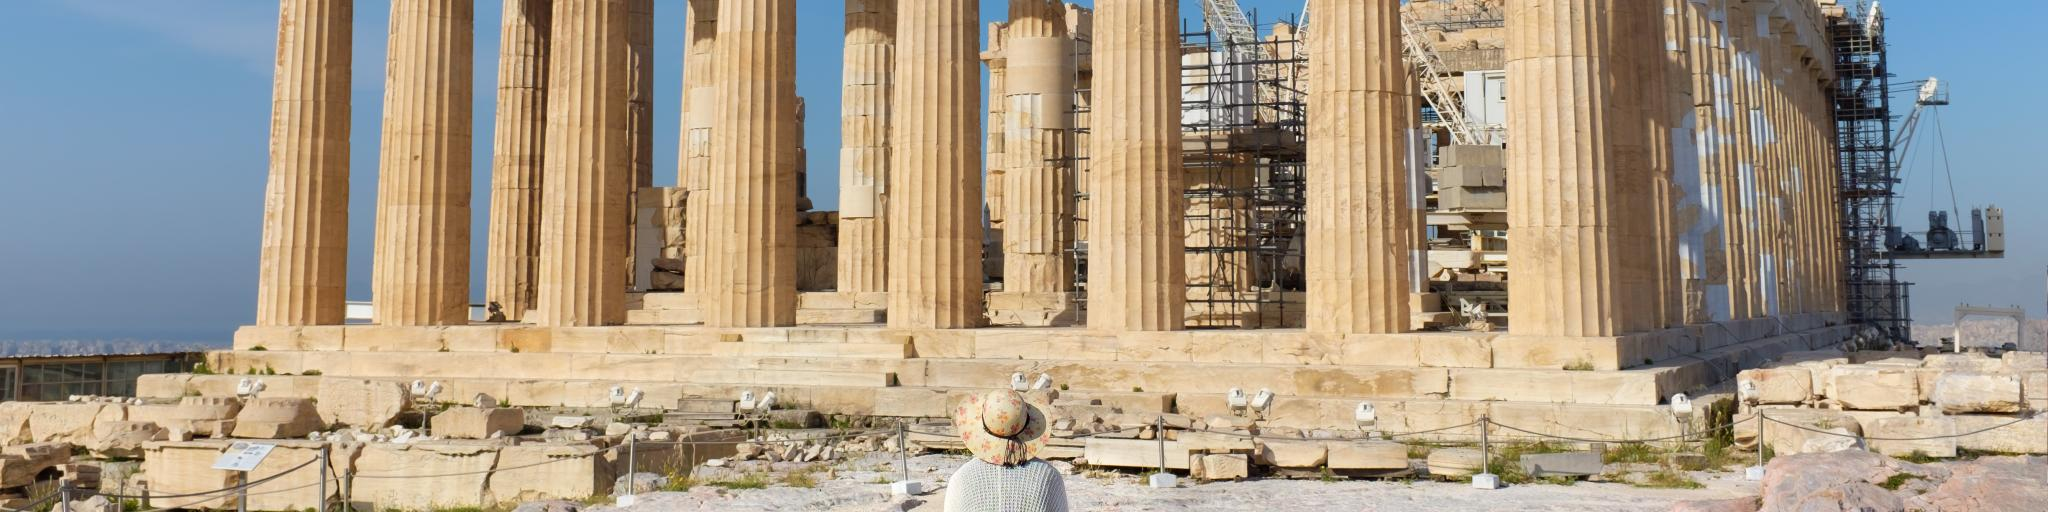 Lady sitting in front of Parthenon on Acropolis, Athens, Greece